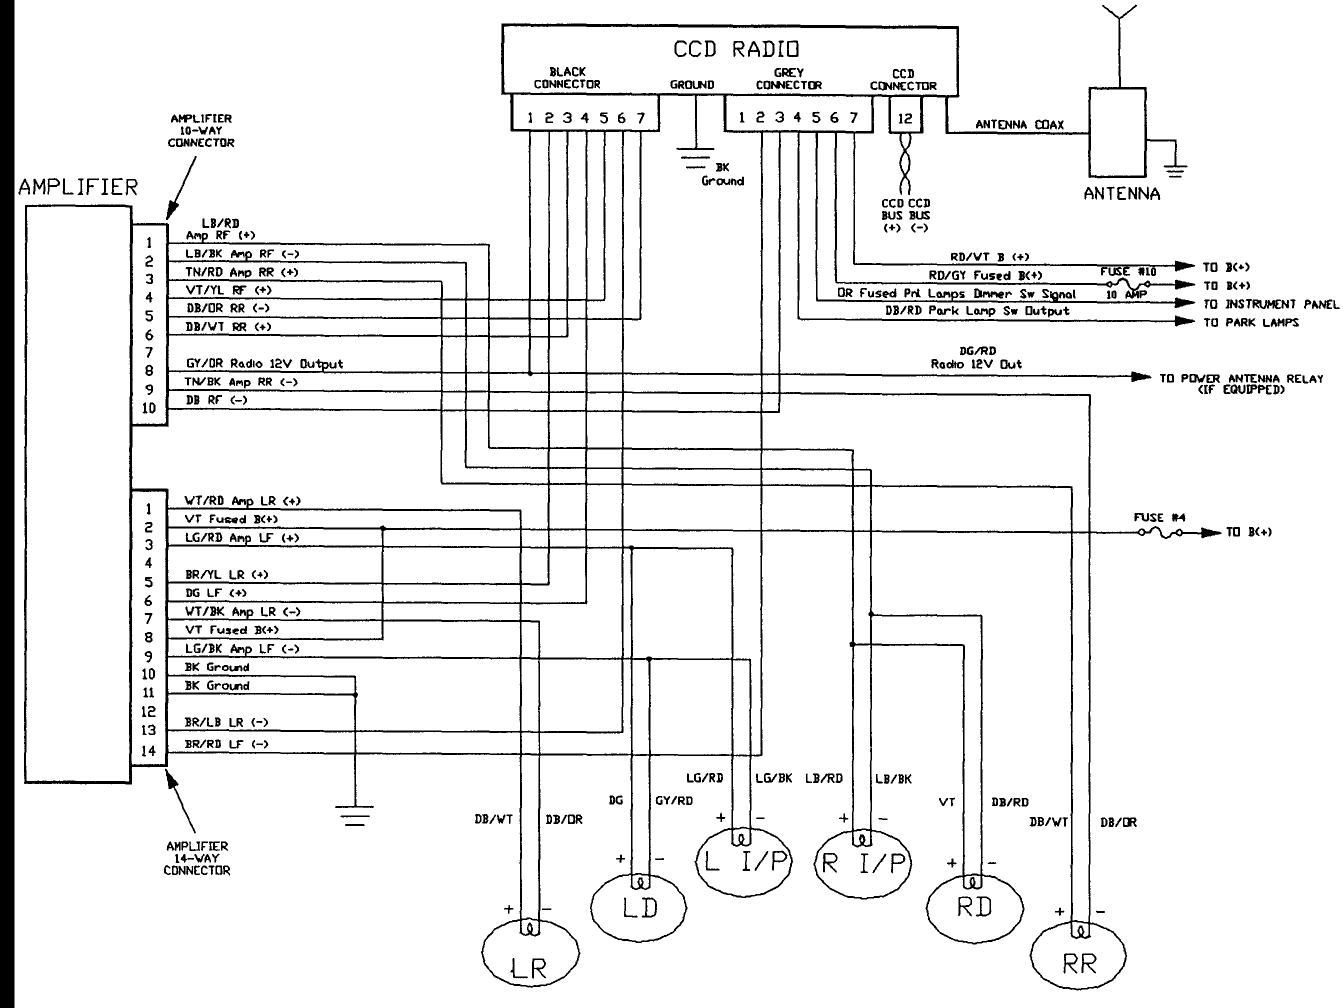 1998 Jeep Cherokee Wiring Diagrams Pdf from 2020cadillac.com